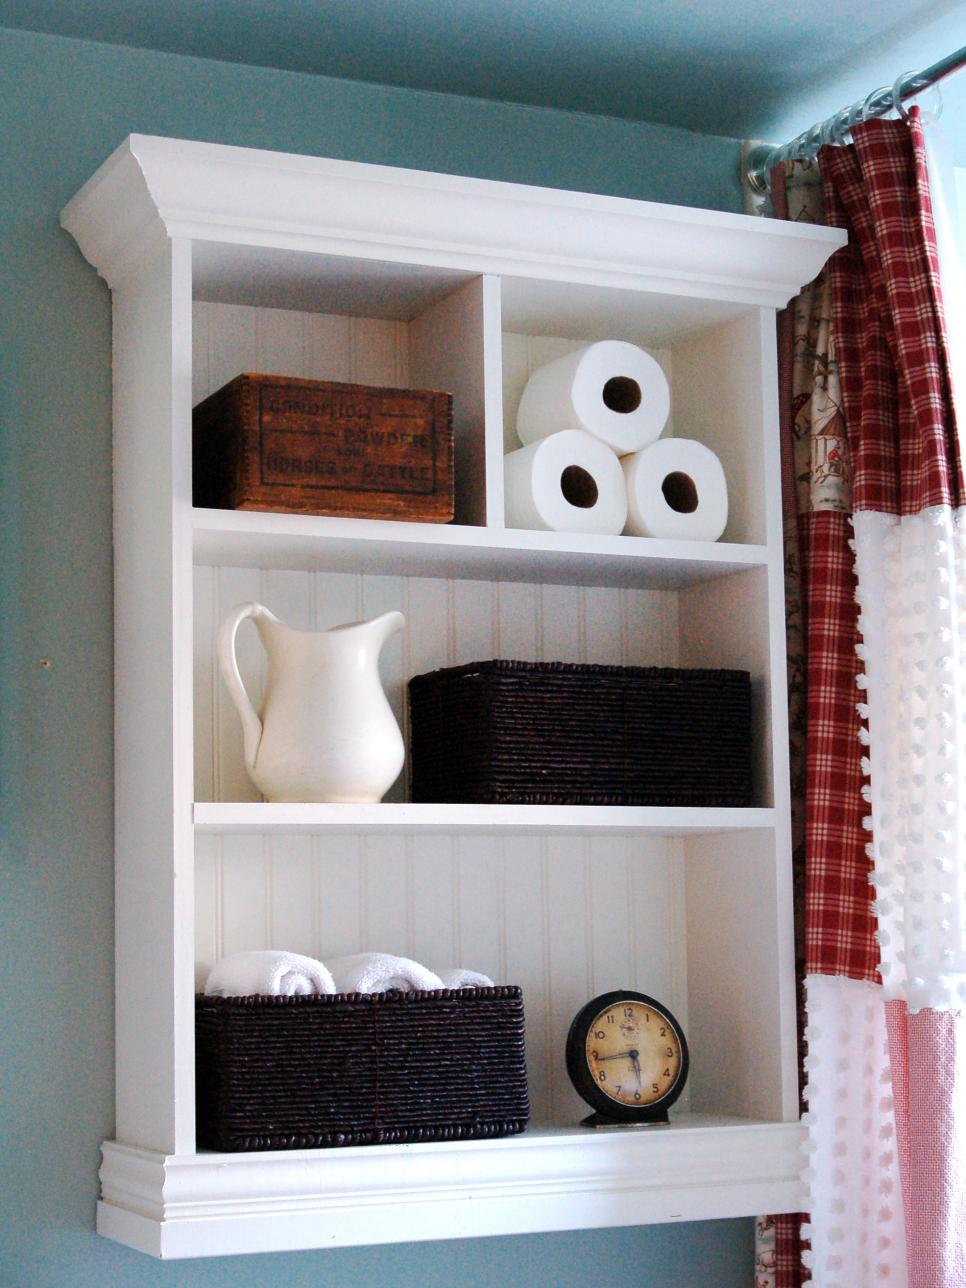 Clever Bathroom Storage Ideas HGTV - Towel storage shelves for small bathroom ideas